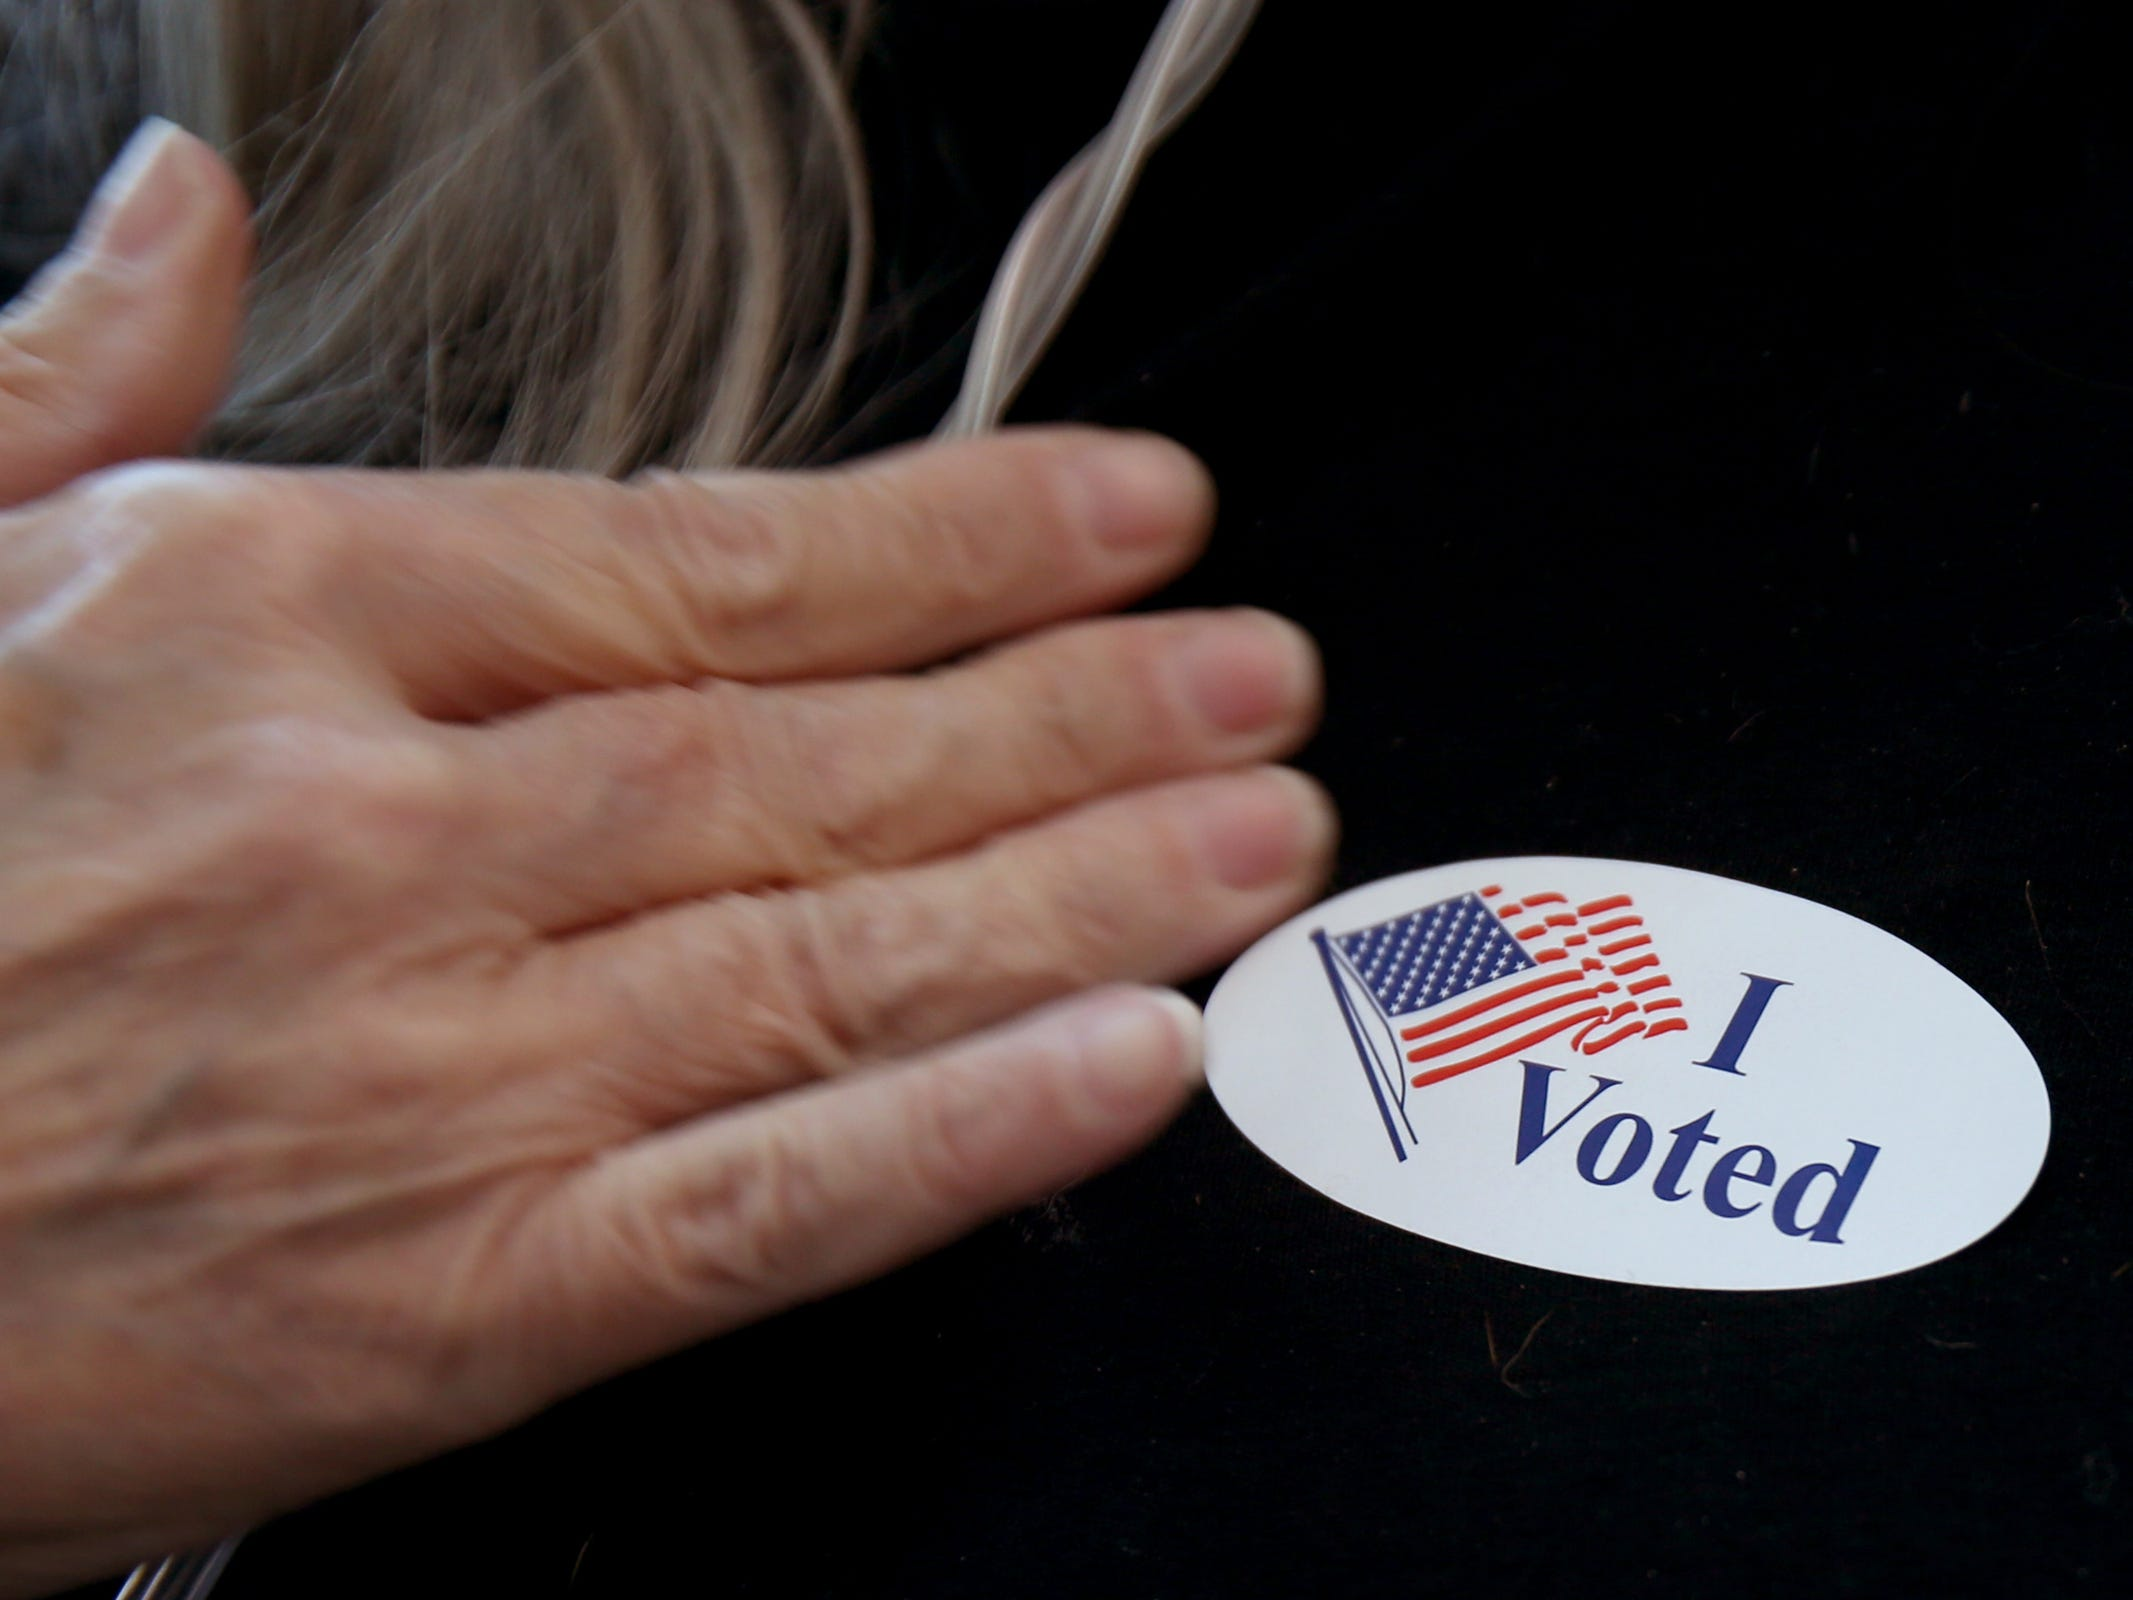 """Pam Laffitte, of Salem, puts on her """"I Voted"""" sticker after dropping off a ballot to a drop box in Salem on Election Day, Tuesday, Nov. 6, 2018."""